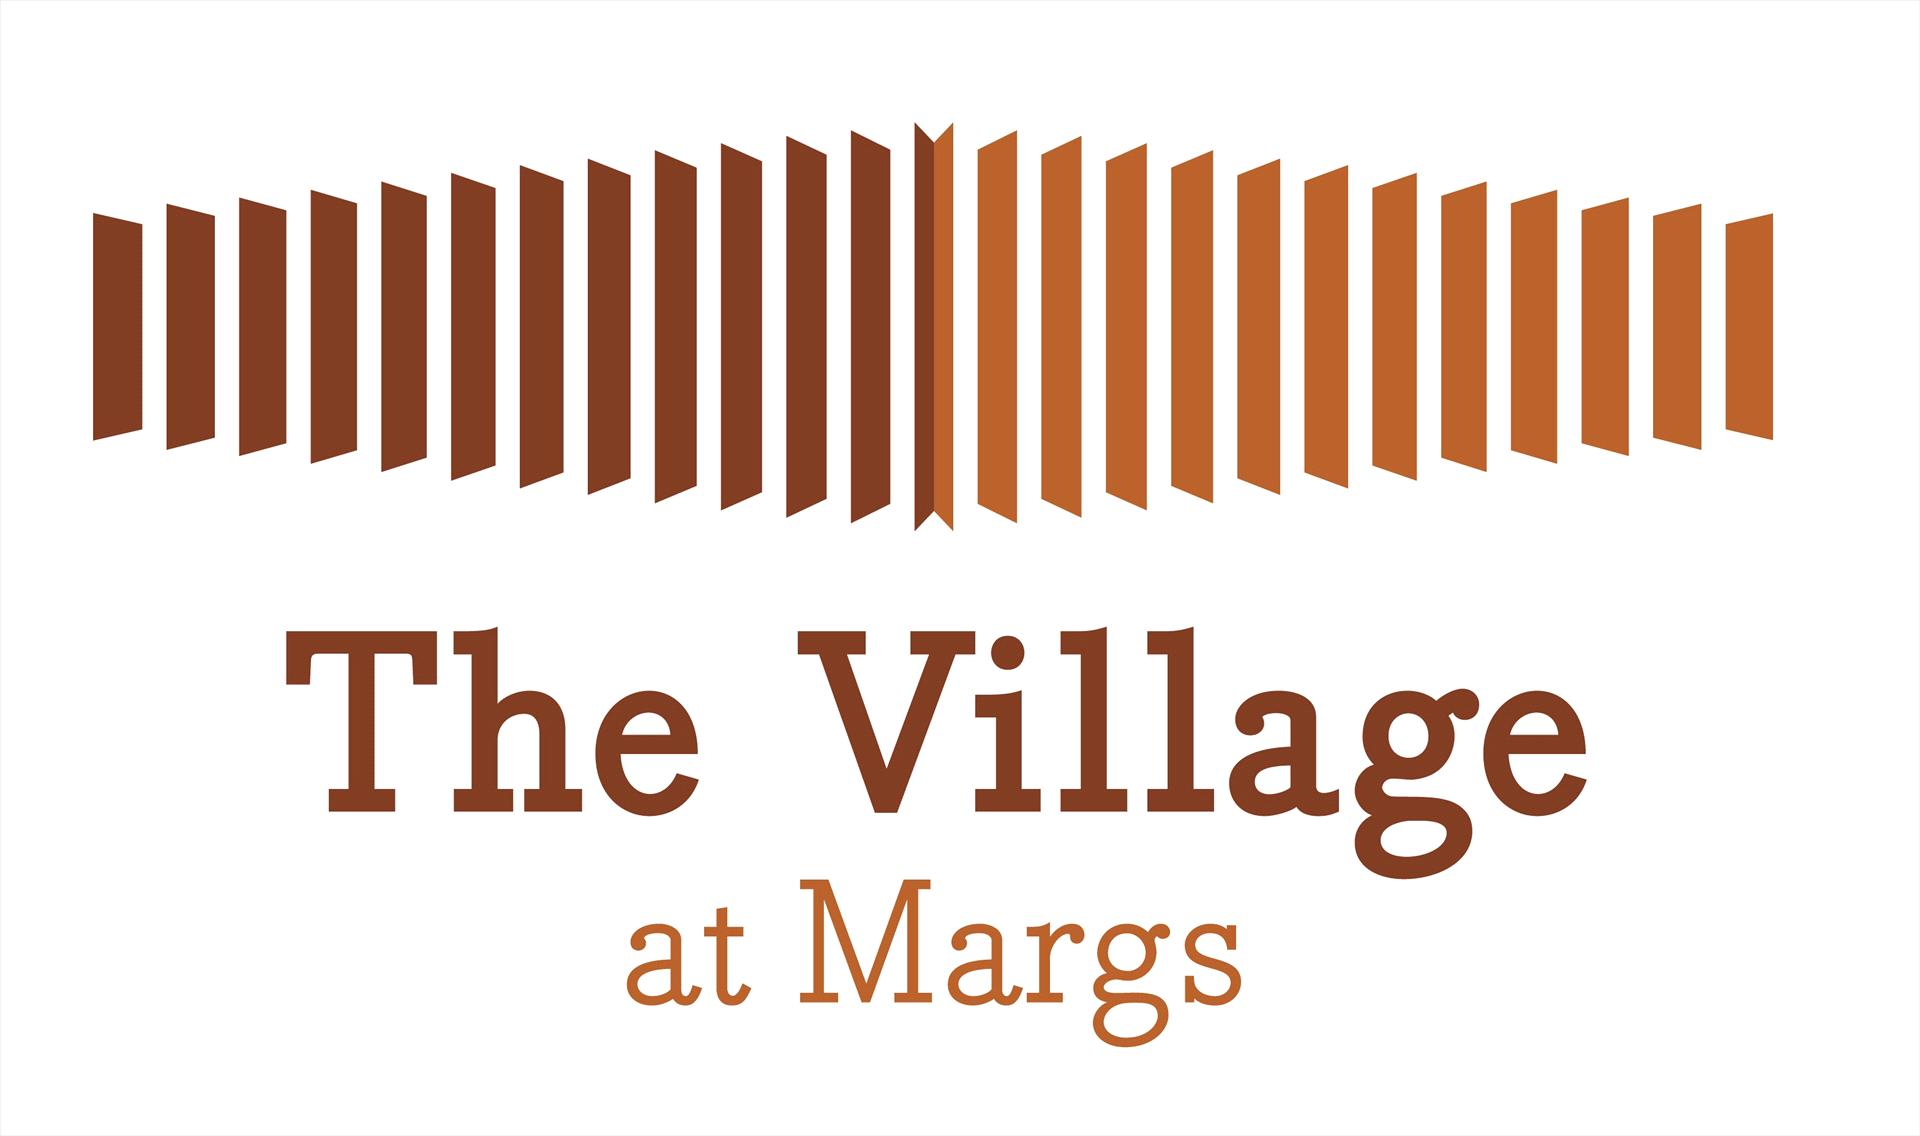 The Village at Margs logo